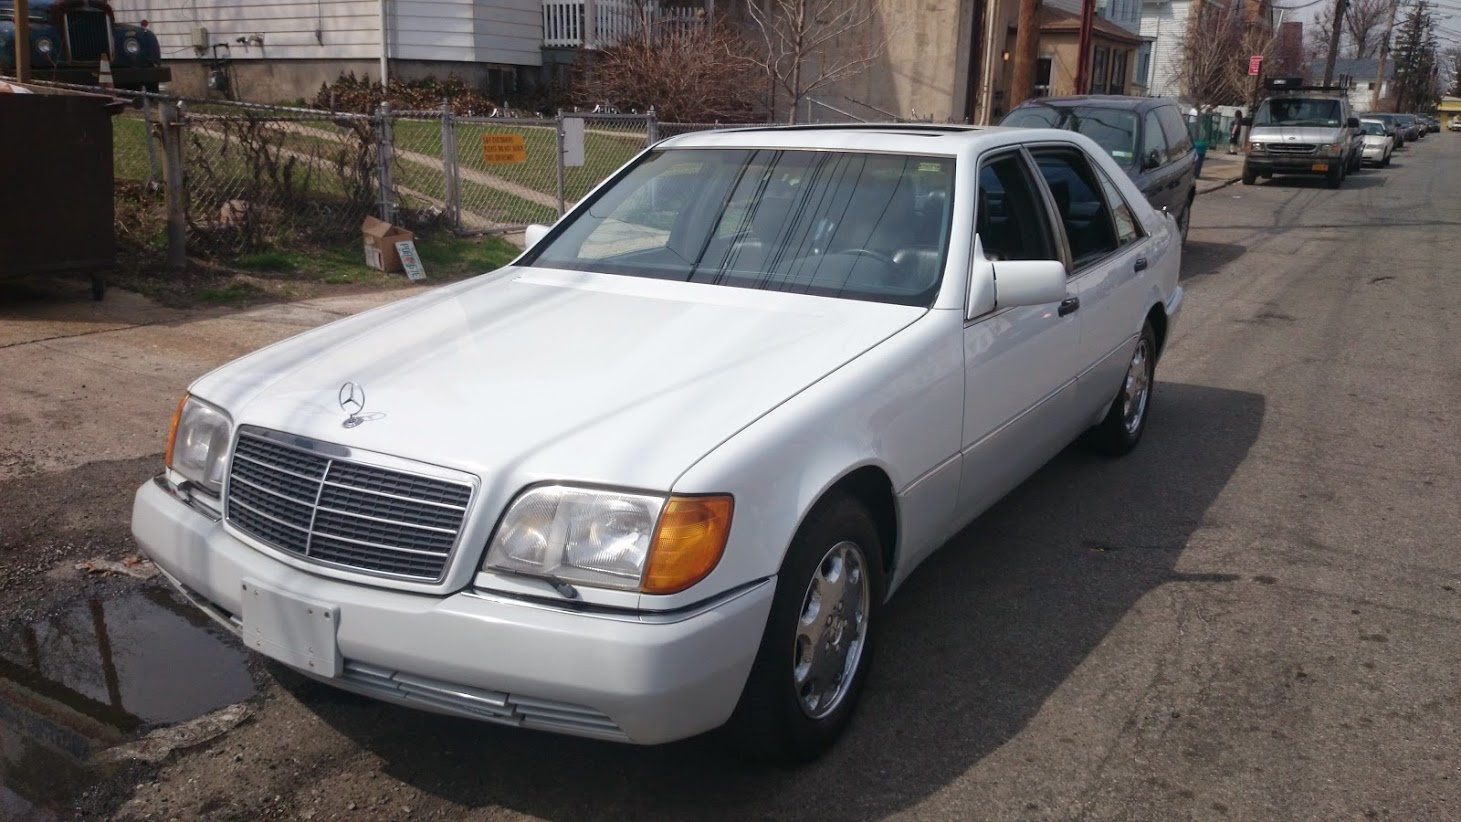 1994 mercedes benz s class pictures cargurus for Mercedes benz 1994